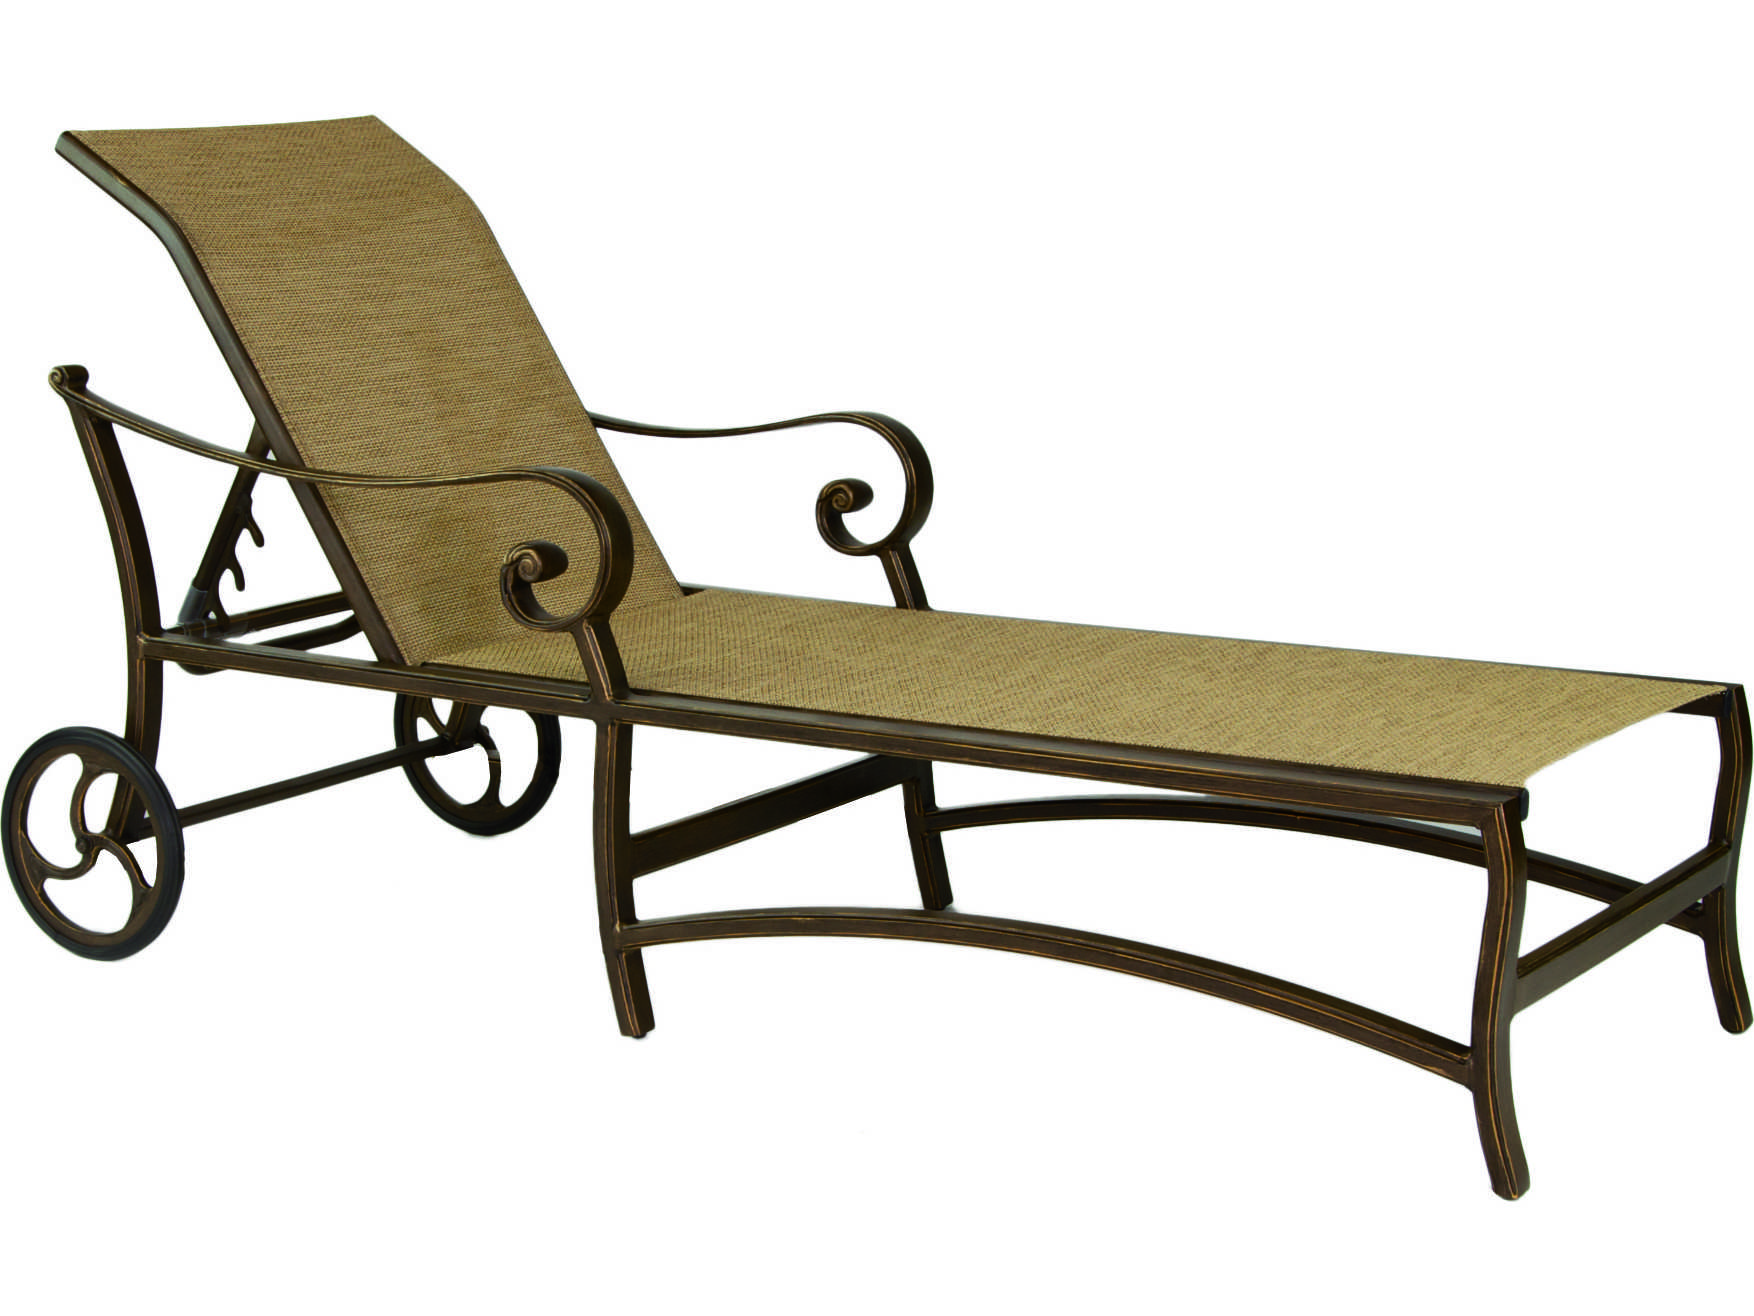 Castelle veracruz sling cast aluminum adjustable chaise for Aluminum chaise lounge with wheels